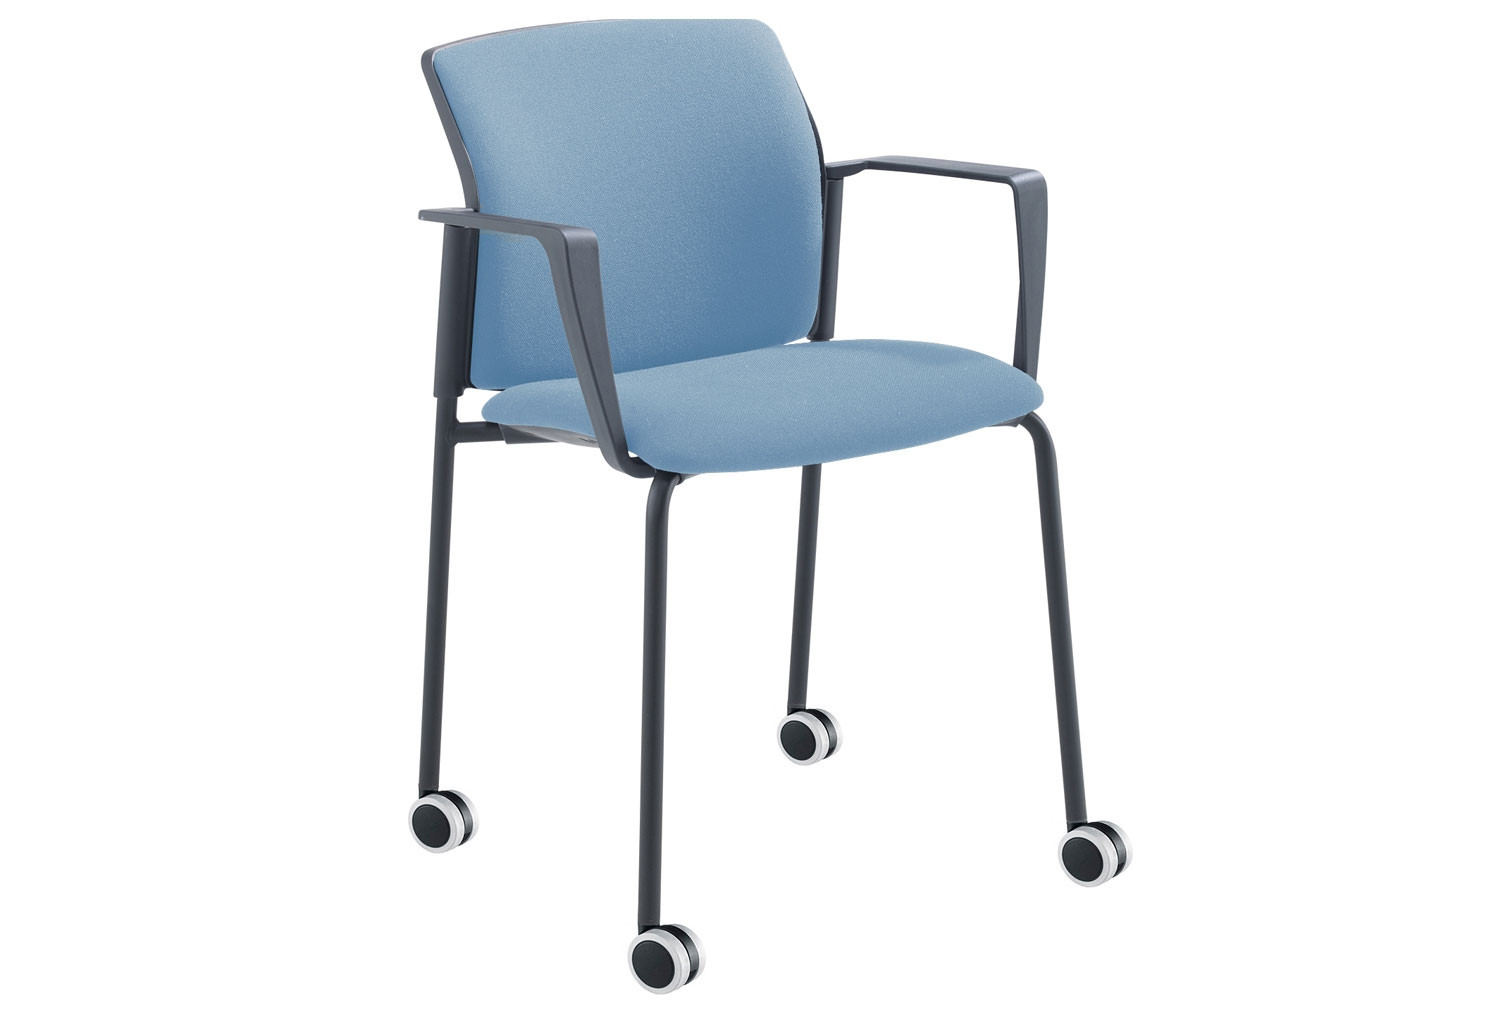 Yarra 4 Leg Mobile Chair With Arms (Black Frame)